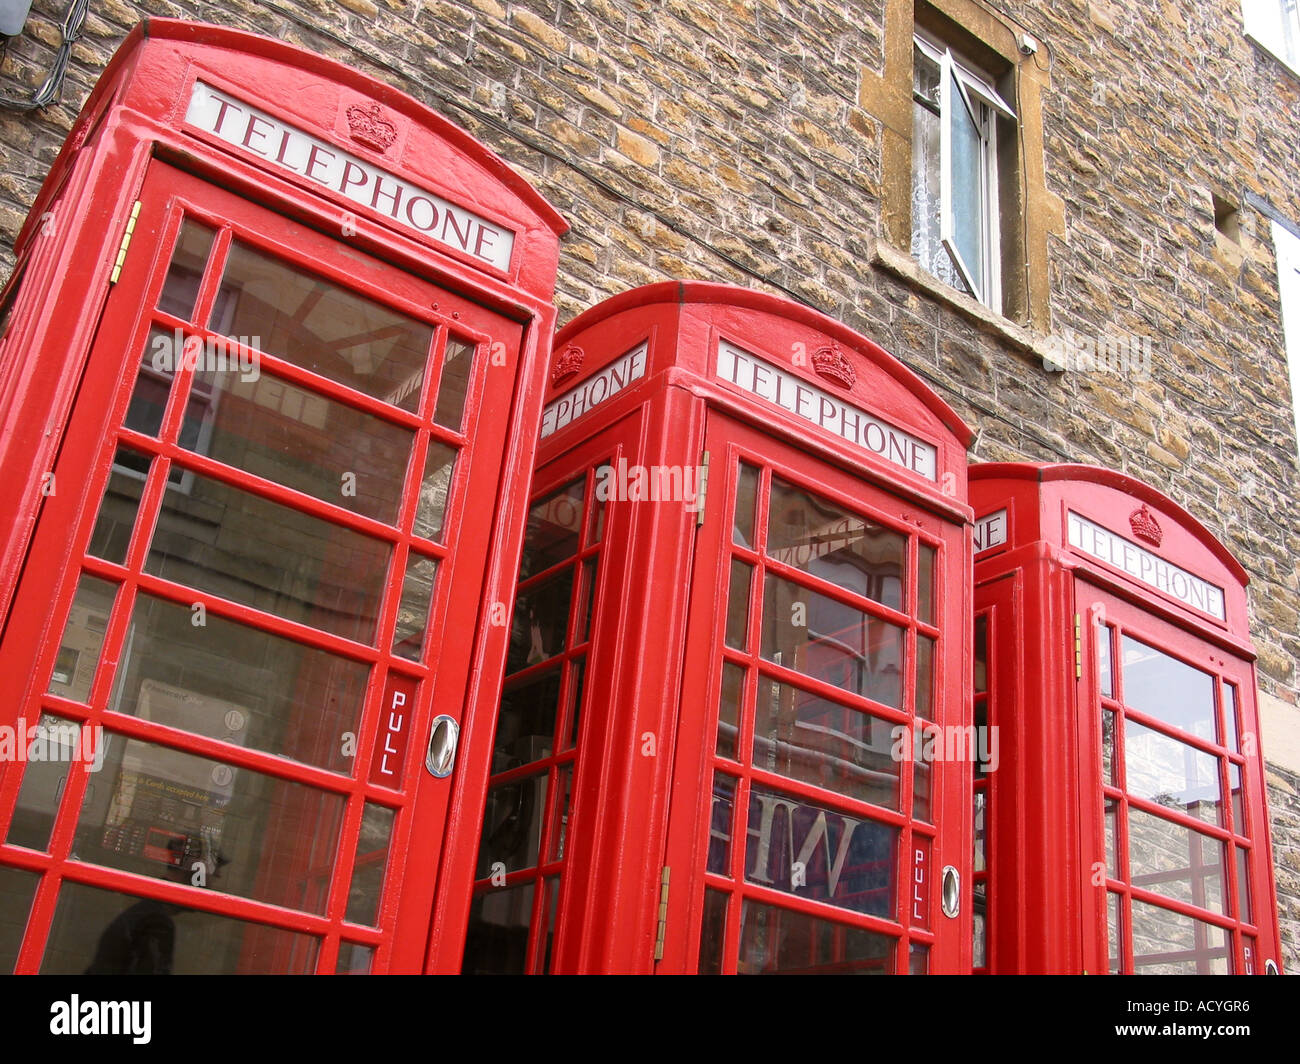 Detail of Three classic red phone boxes Hastings England - Stock Image